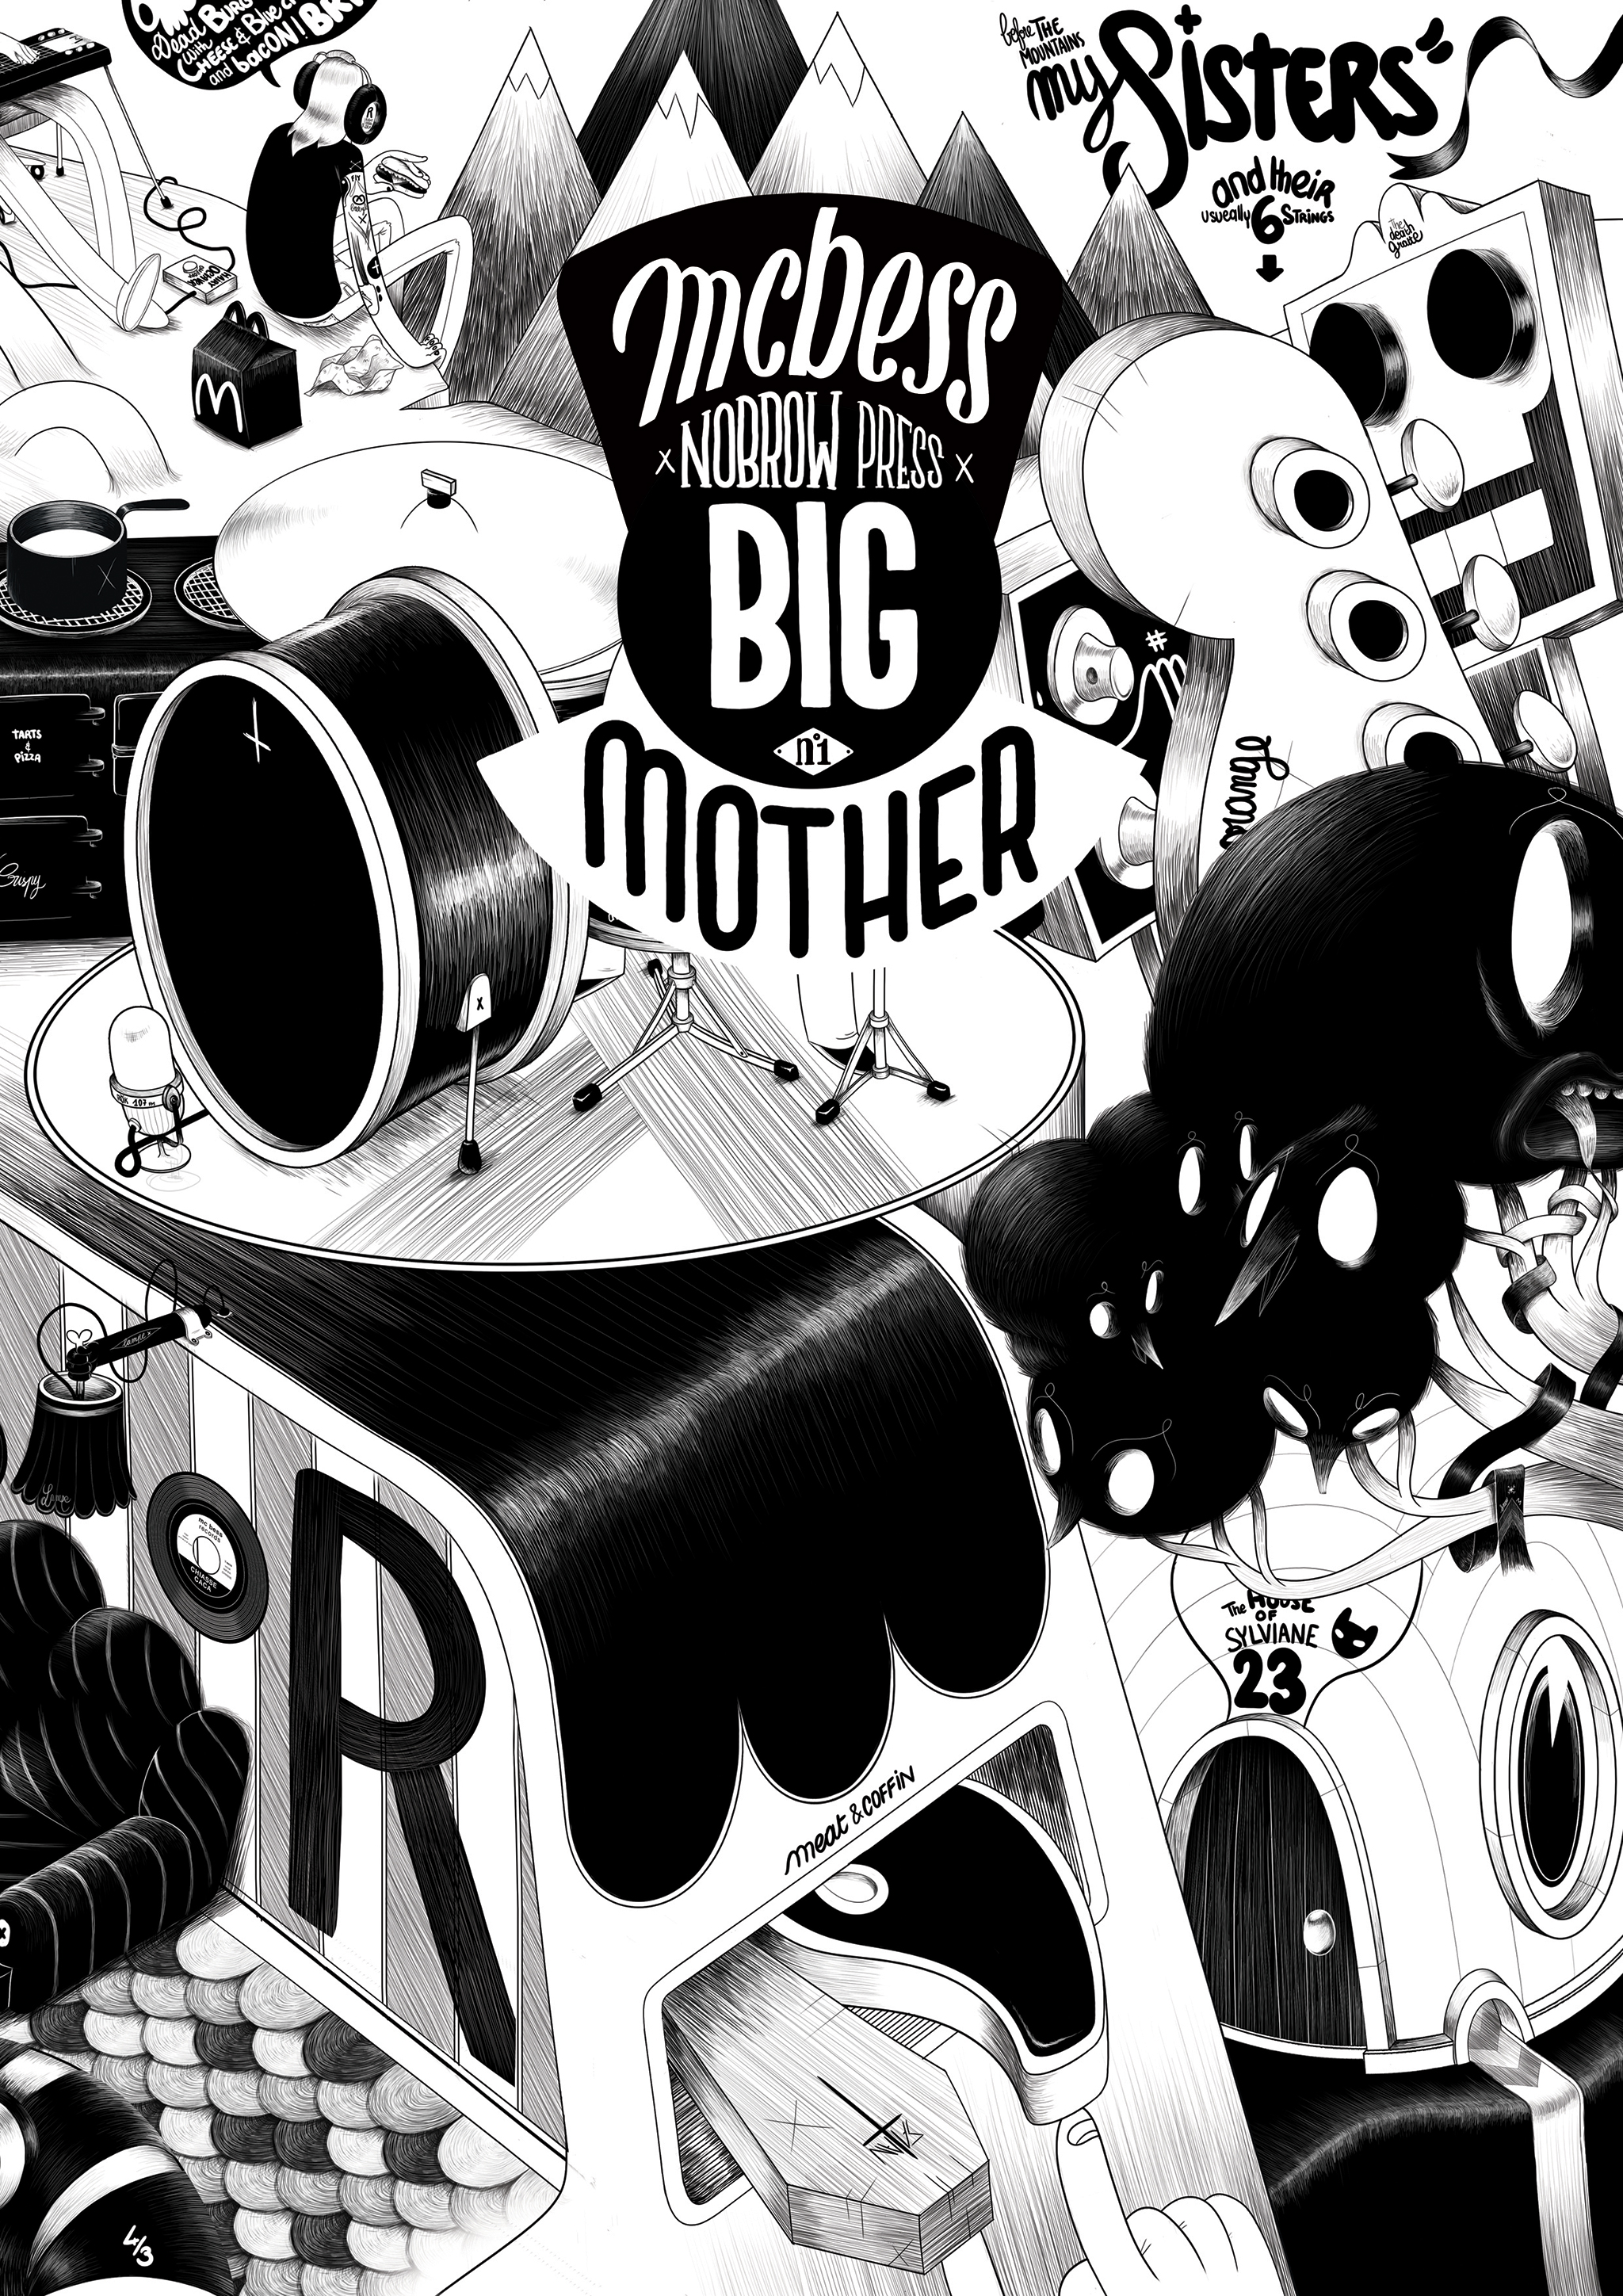 Big Mother # 1: McBess (Limited Edition)